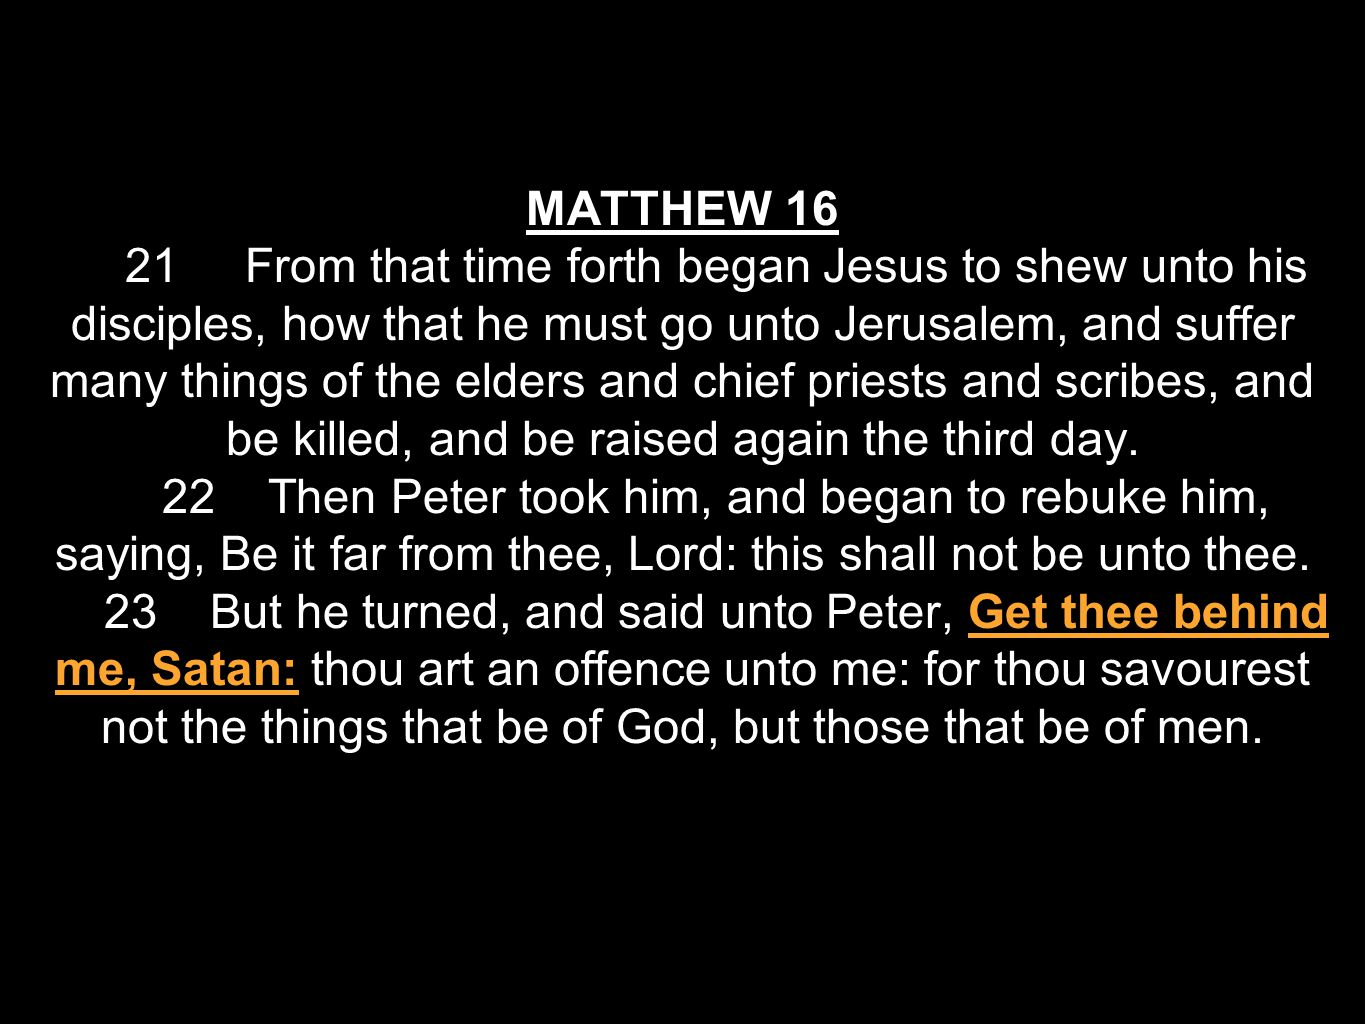 MATTHEW 16 21 From that time forth began Jesus to shew unto his disciples, how that he must go unto Jerusalem, and suffer many things of the elders and chief priests and scribes, and be killed, and be raised again the third day.